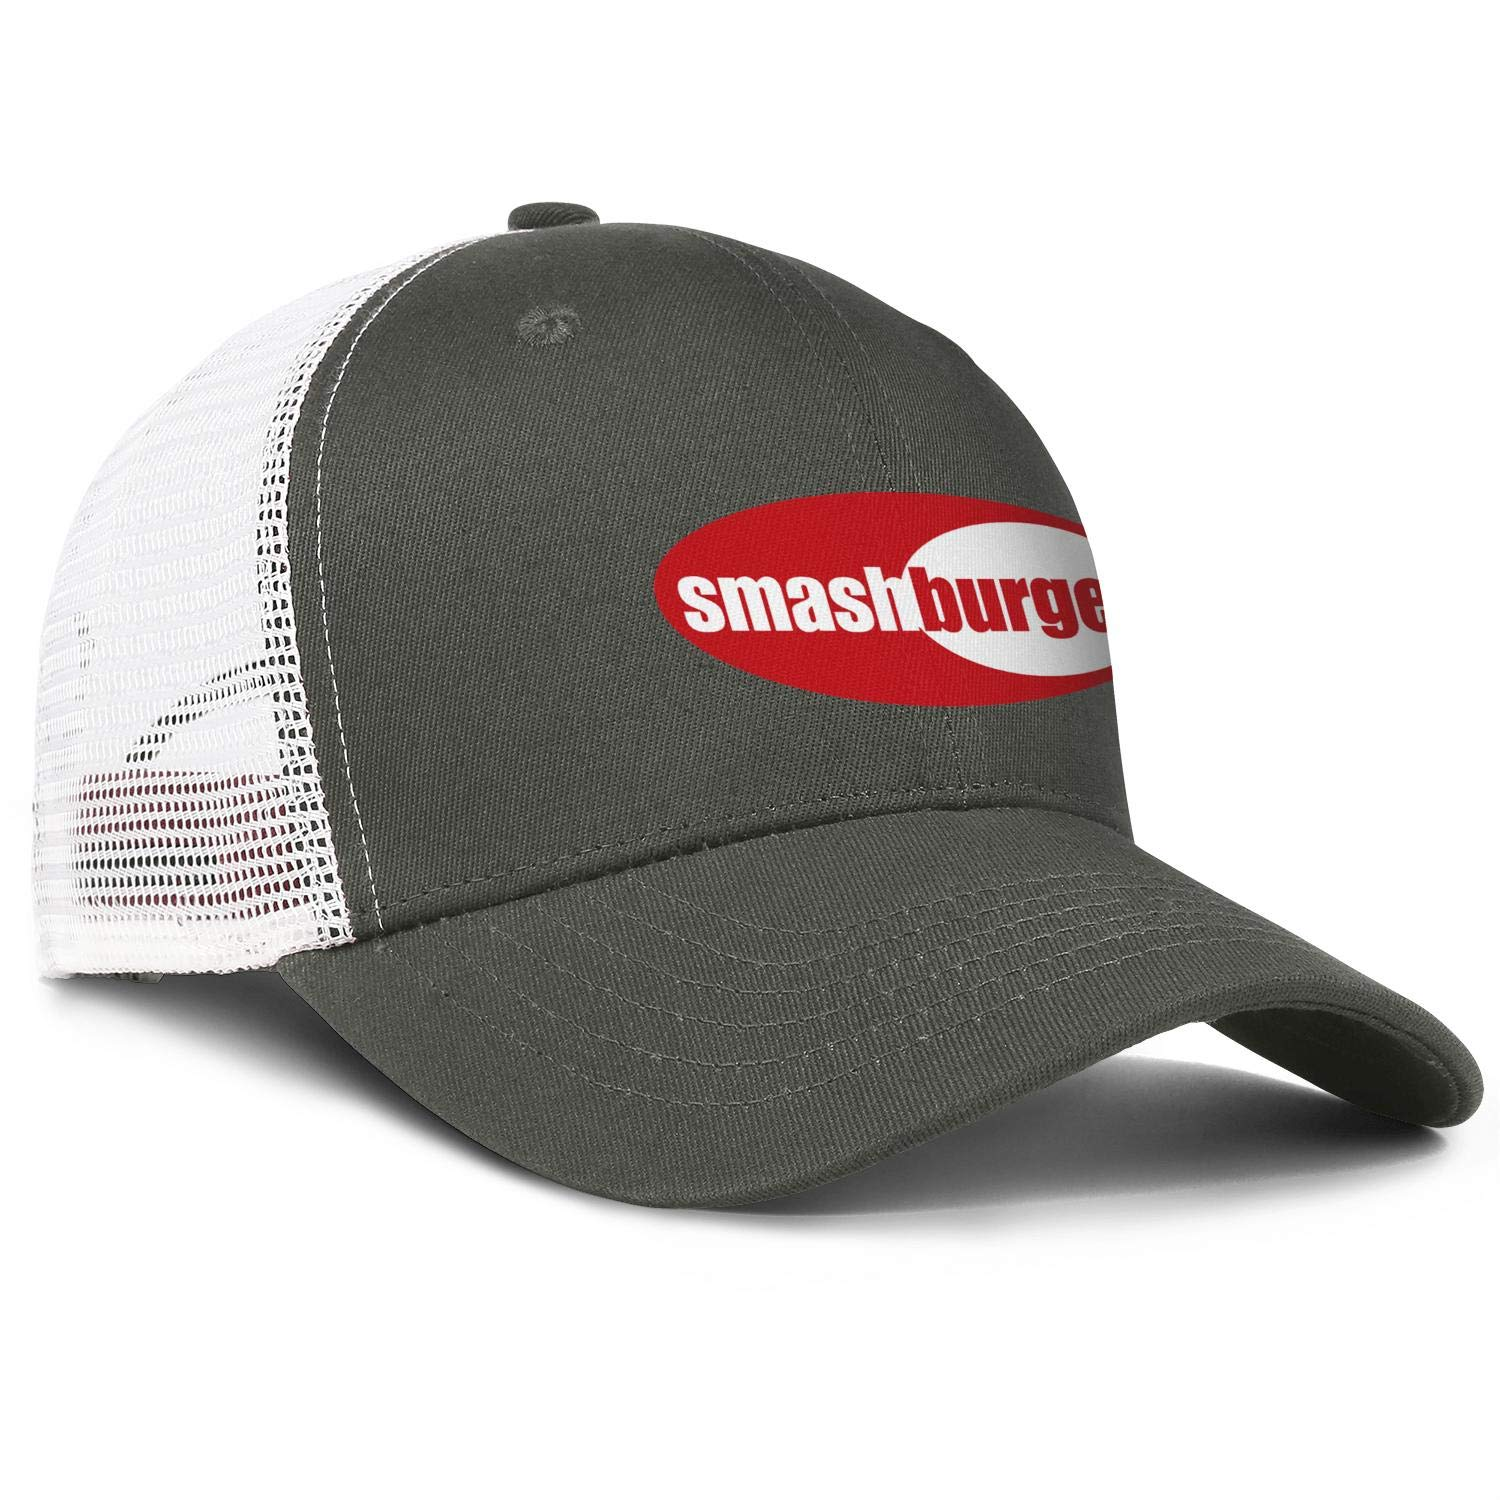 WintyHC Smashburger Cowboy Hat Dad Hat One Size Baseball Cap